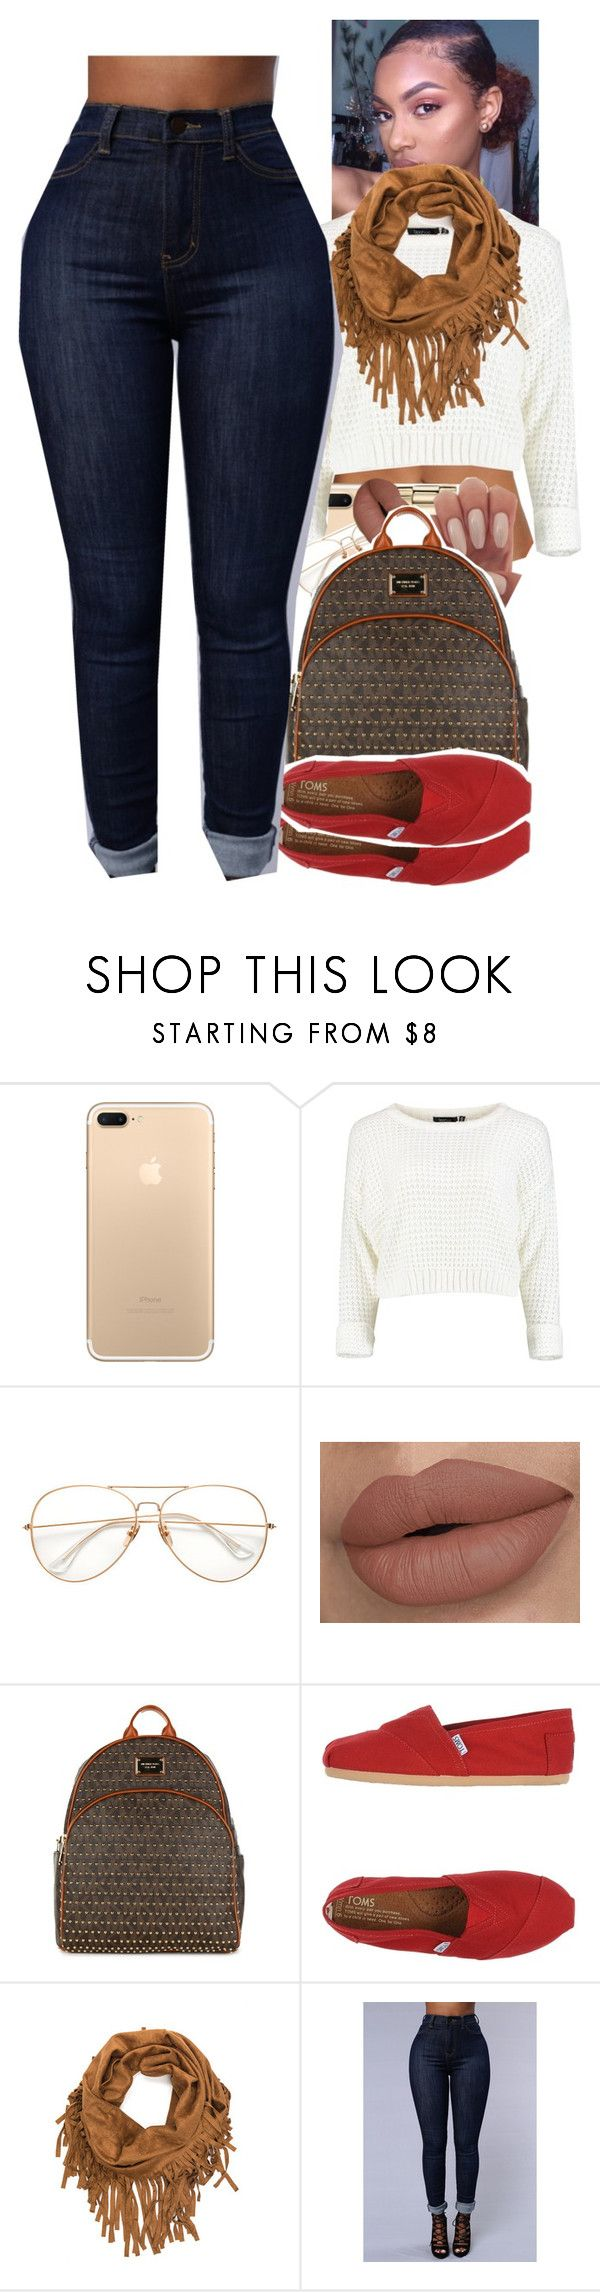 """""""Untitled #1678"""" by txoni ❤ liked on Polyvore featuring Michael Kors, MICHAEL Michael Kors and TOMS"""